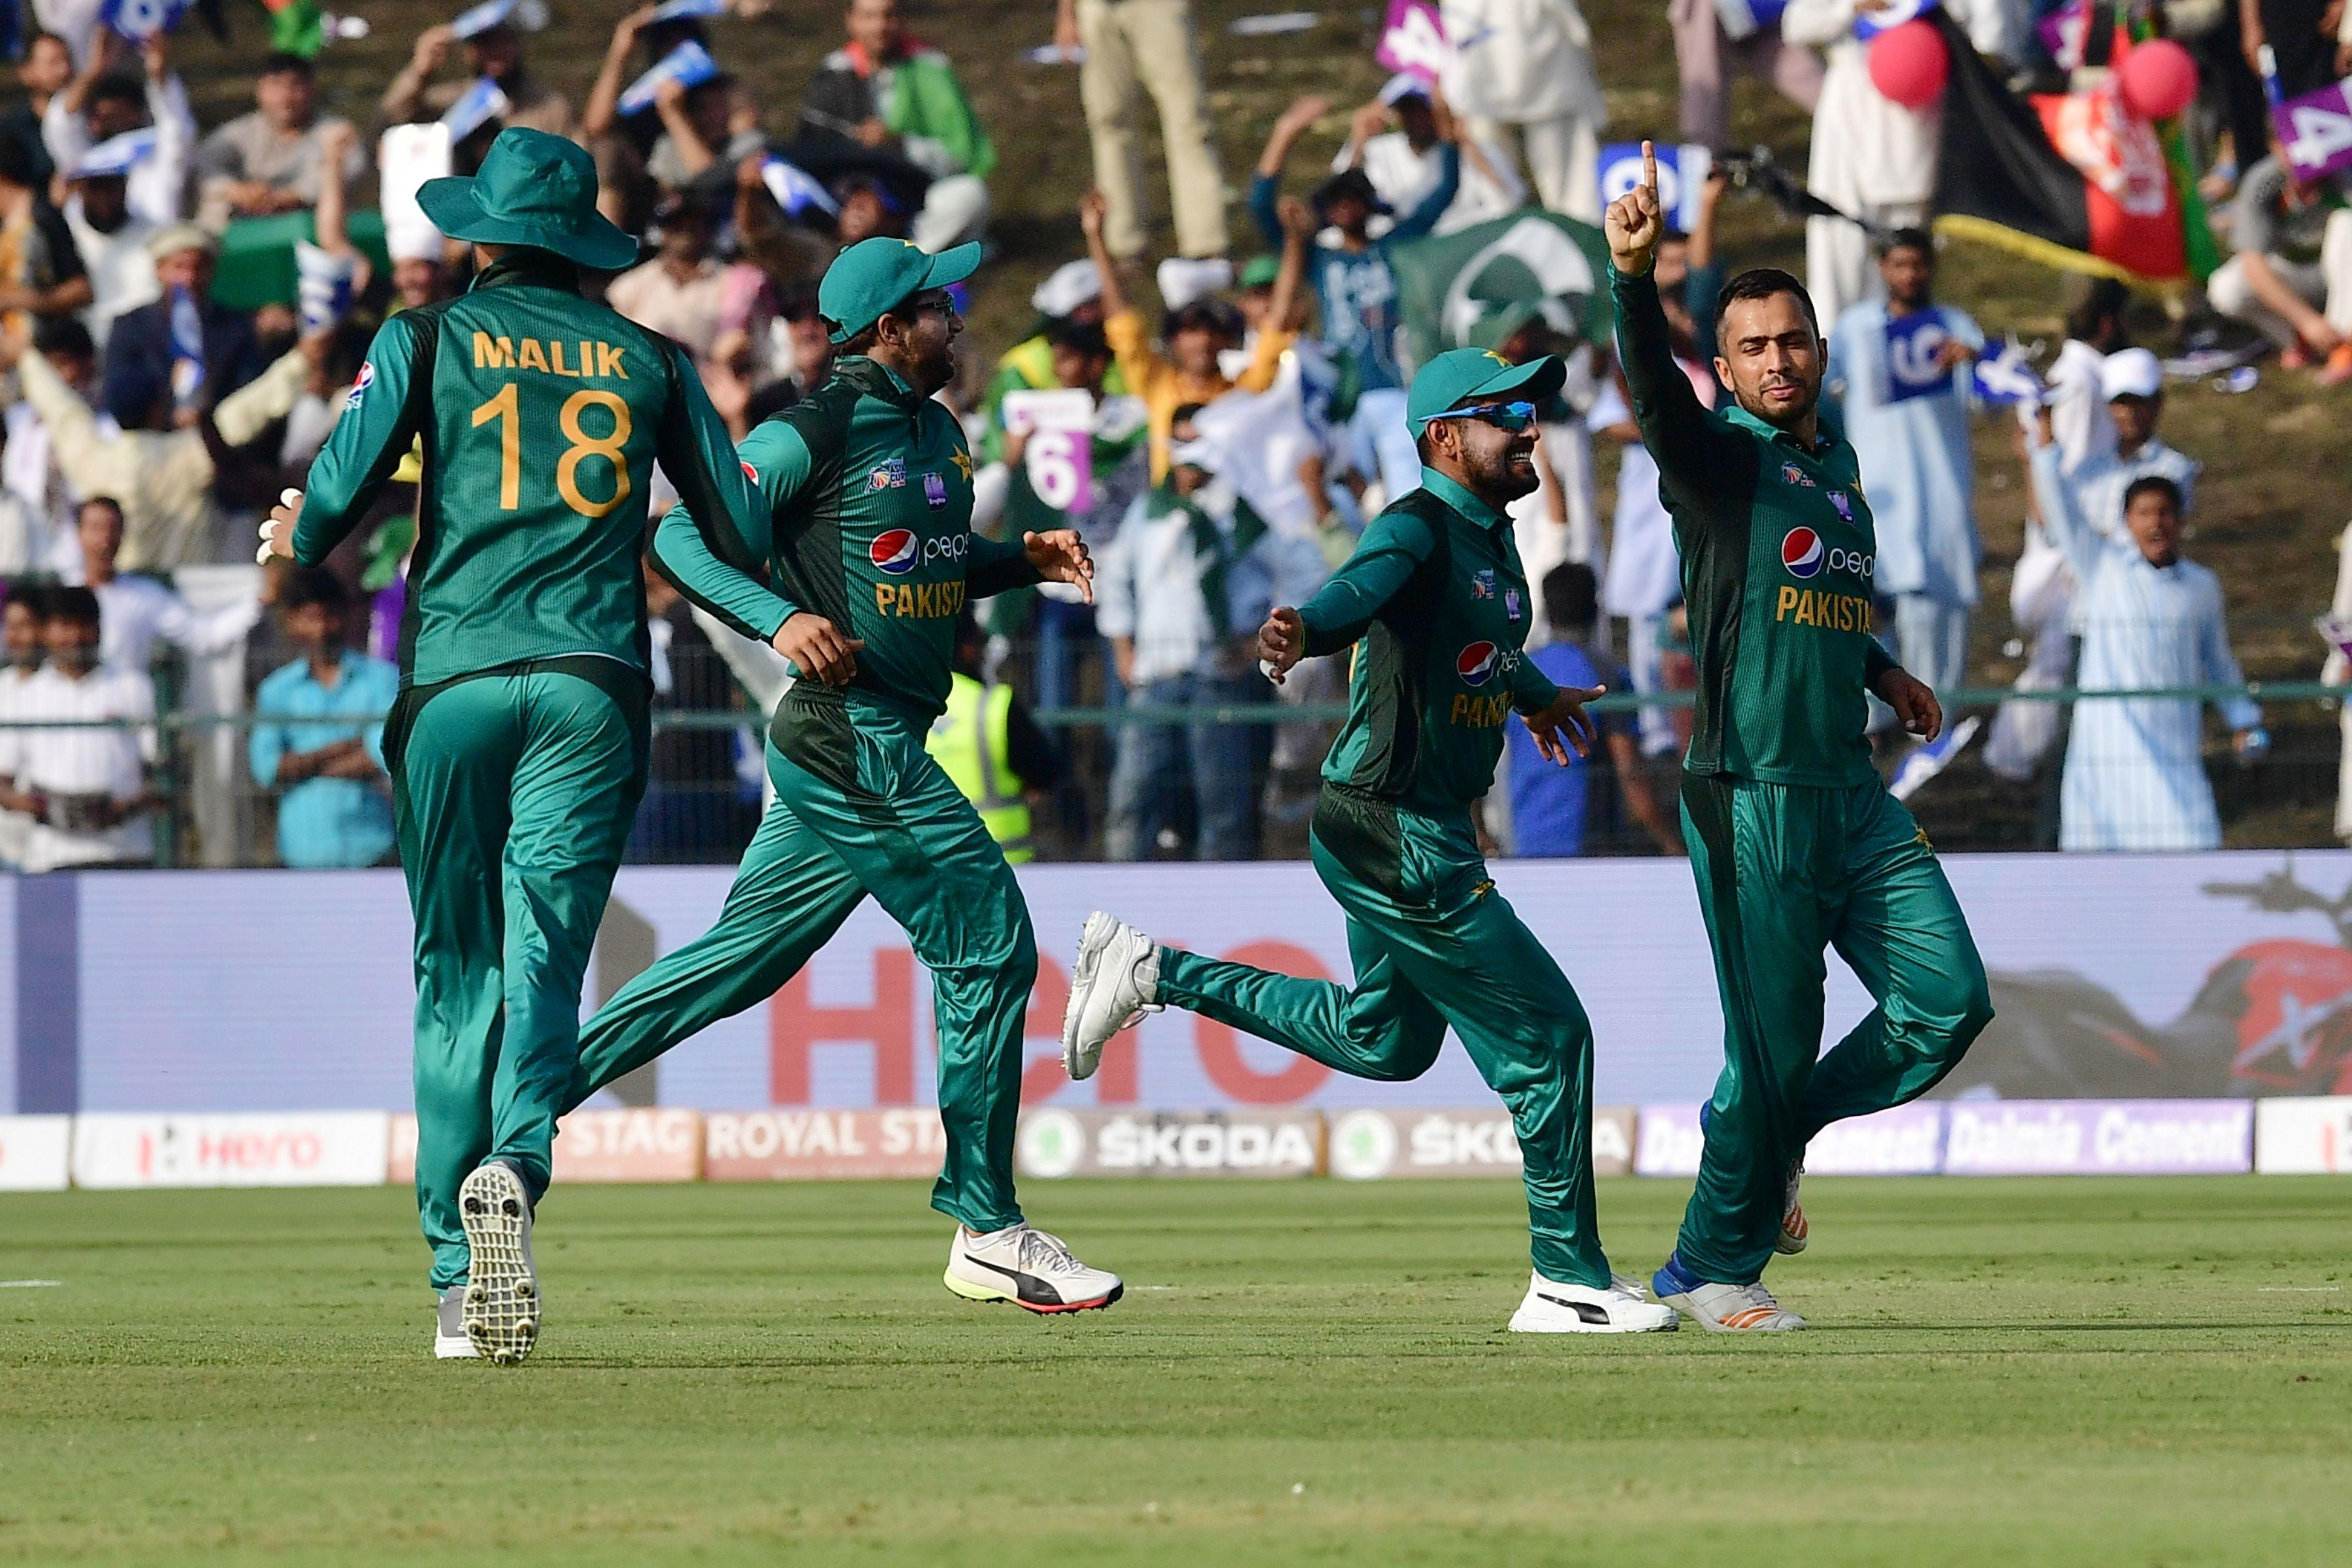 Pakistan are looking for their third Asia Cup title